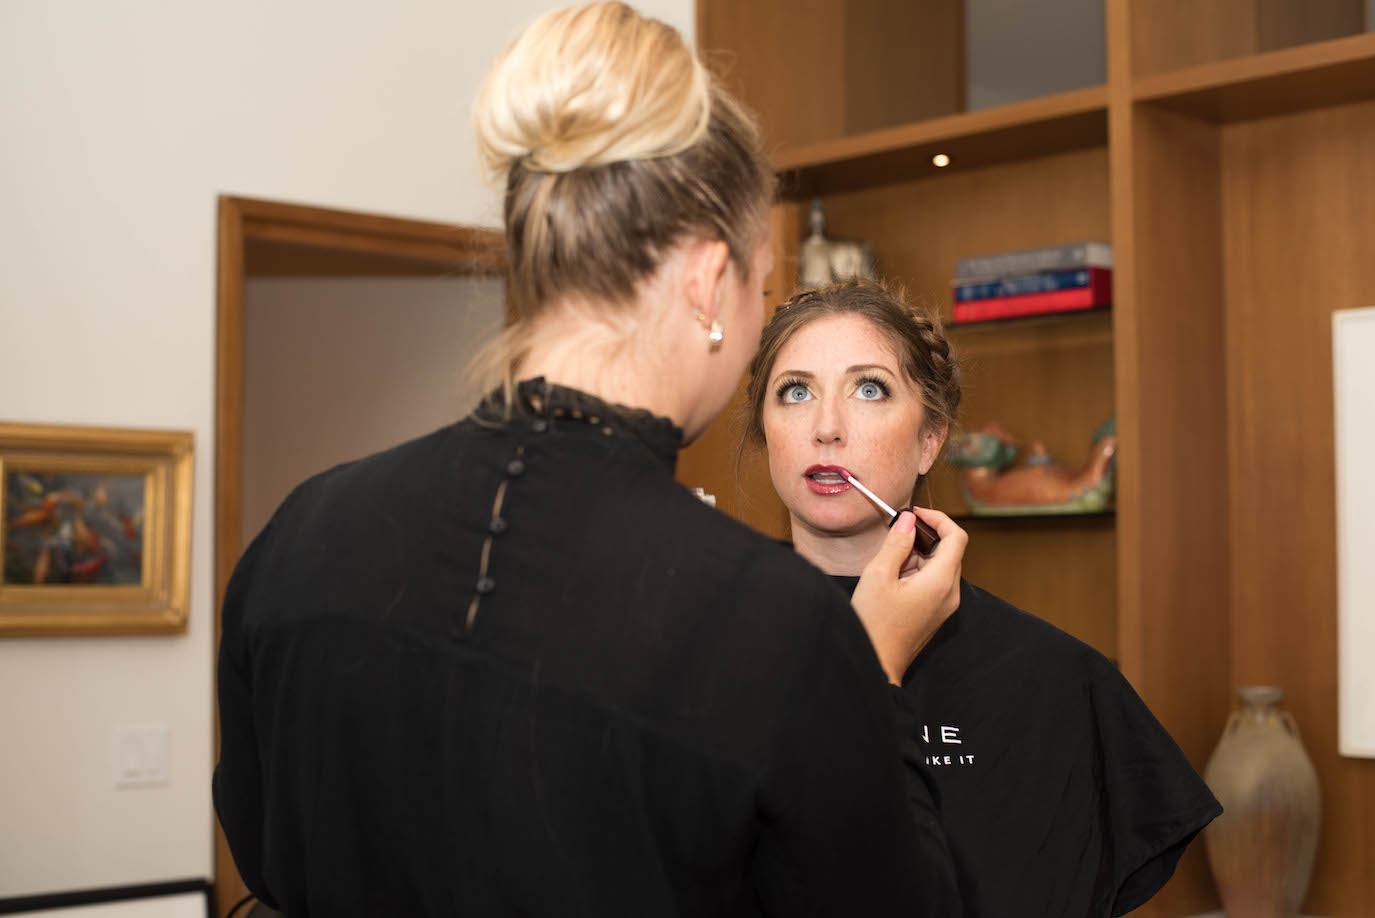 A La Mienne makeup artist adds a finishing coat of glass